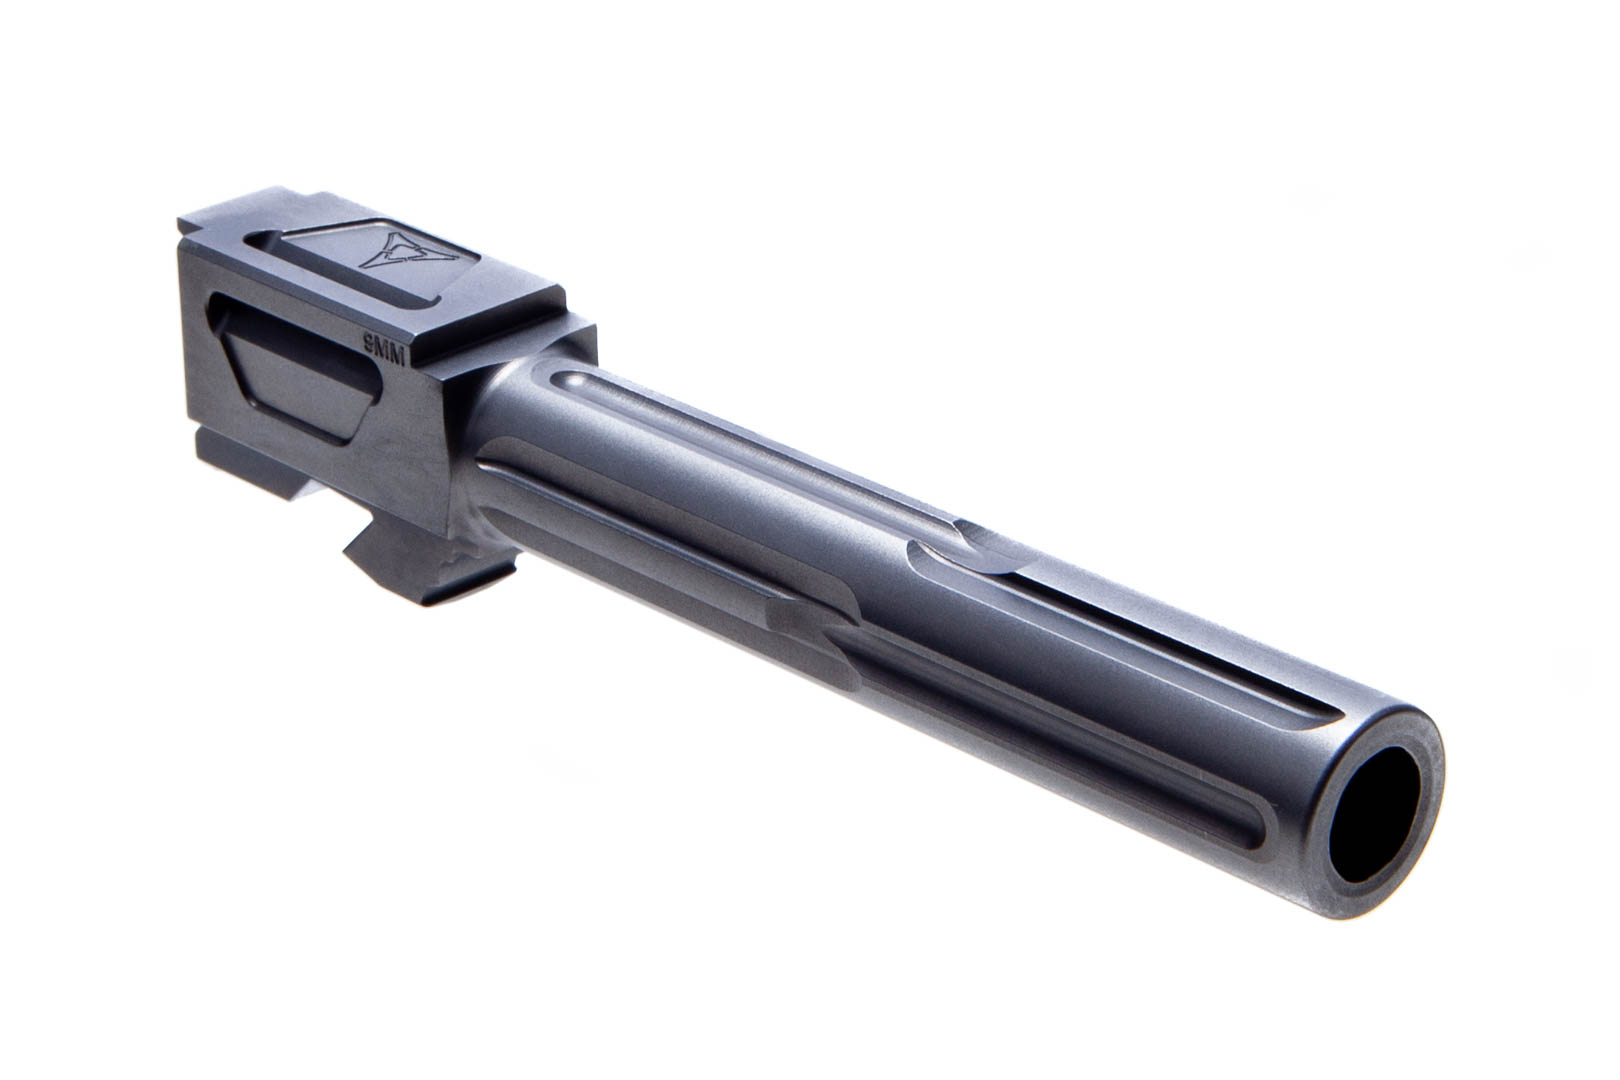 Killer Innovations Glock 17 Non-Threaded Velocity Barrel